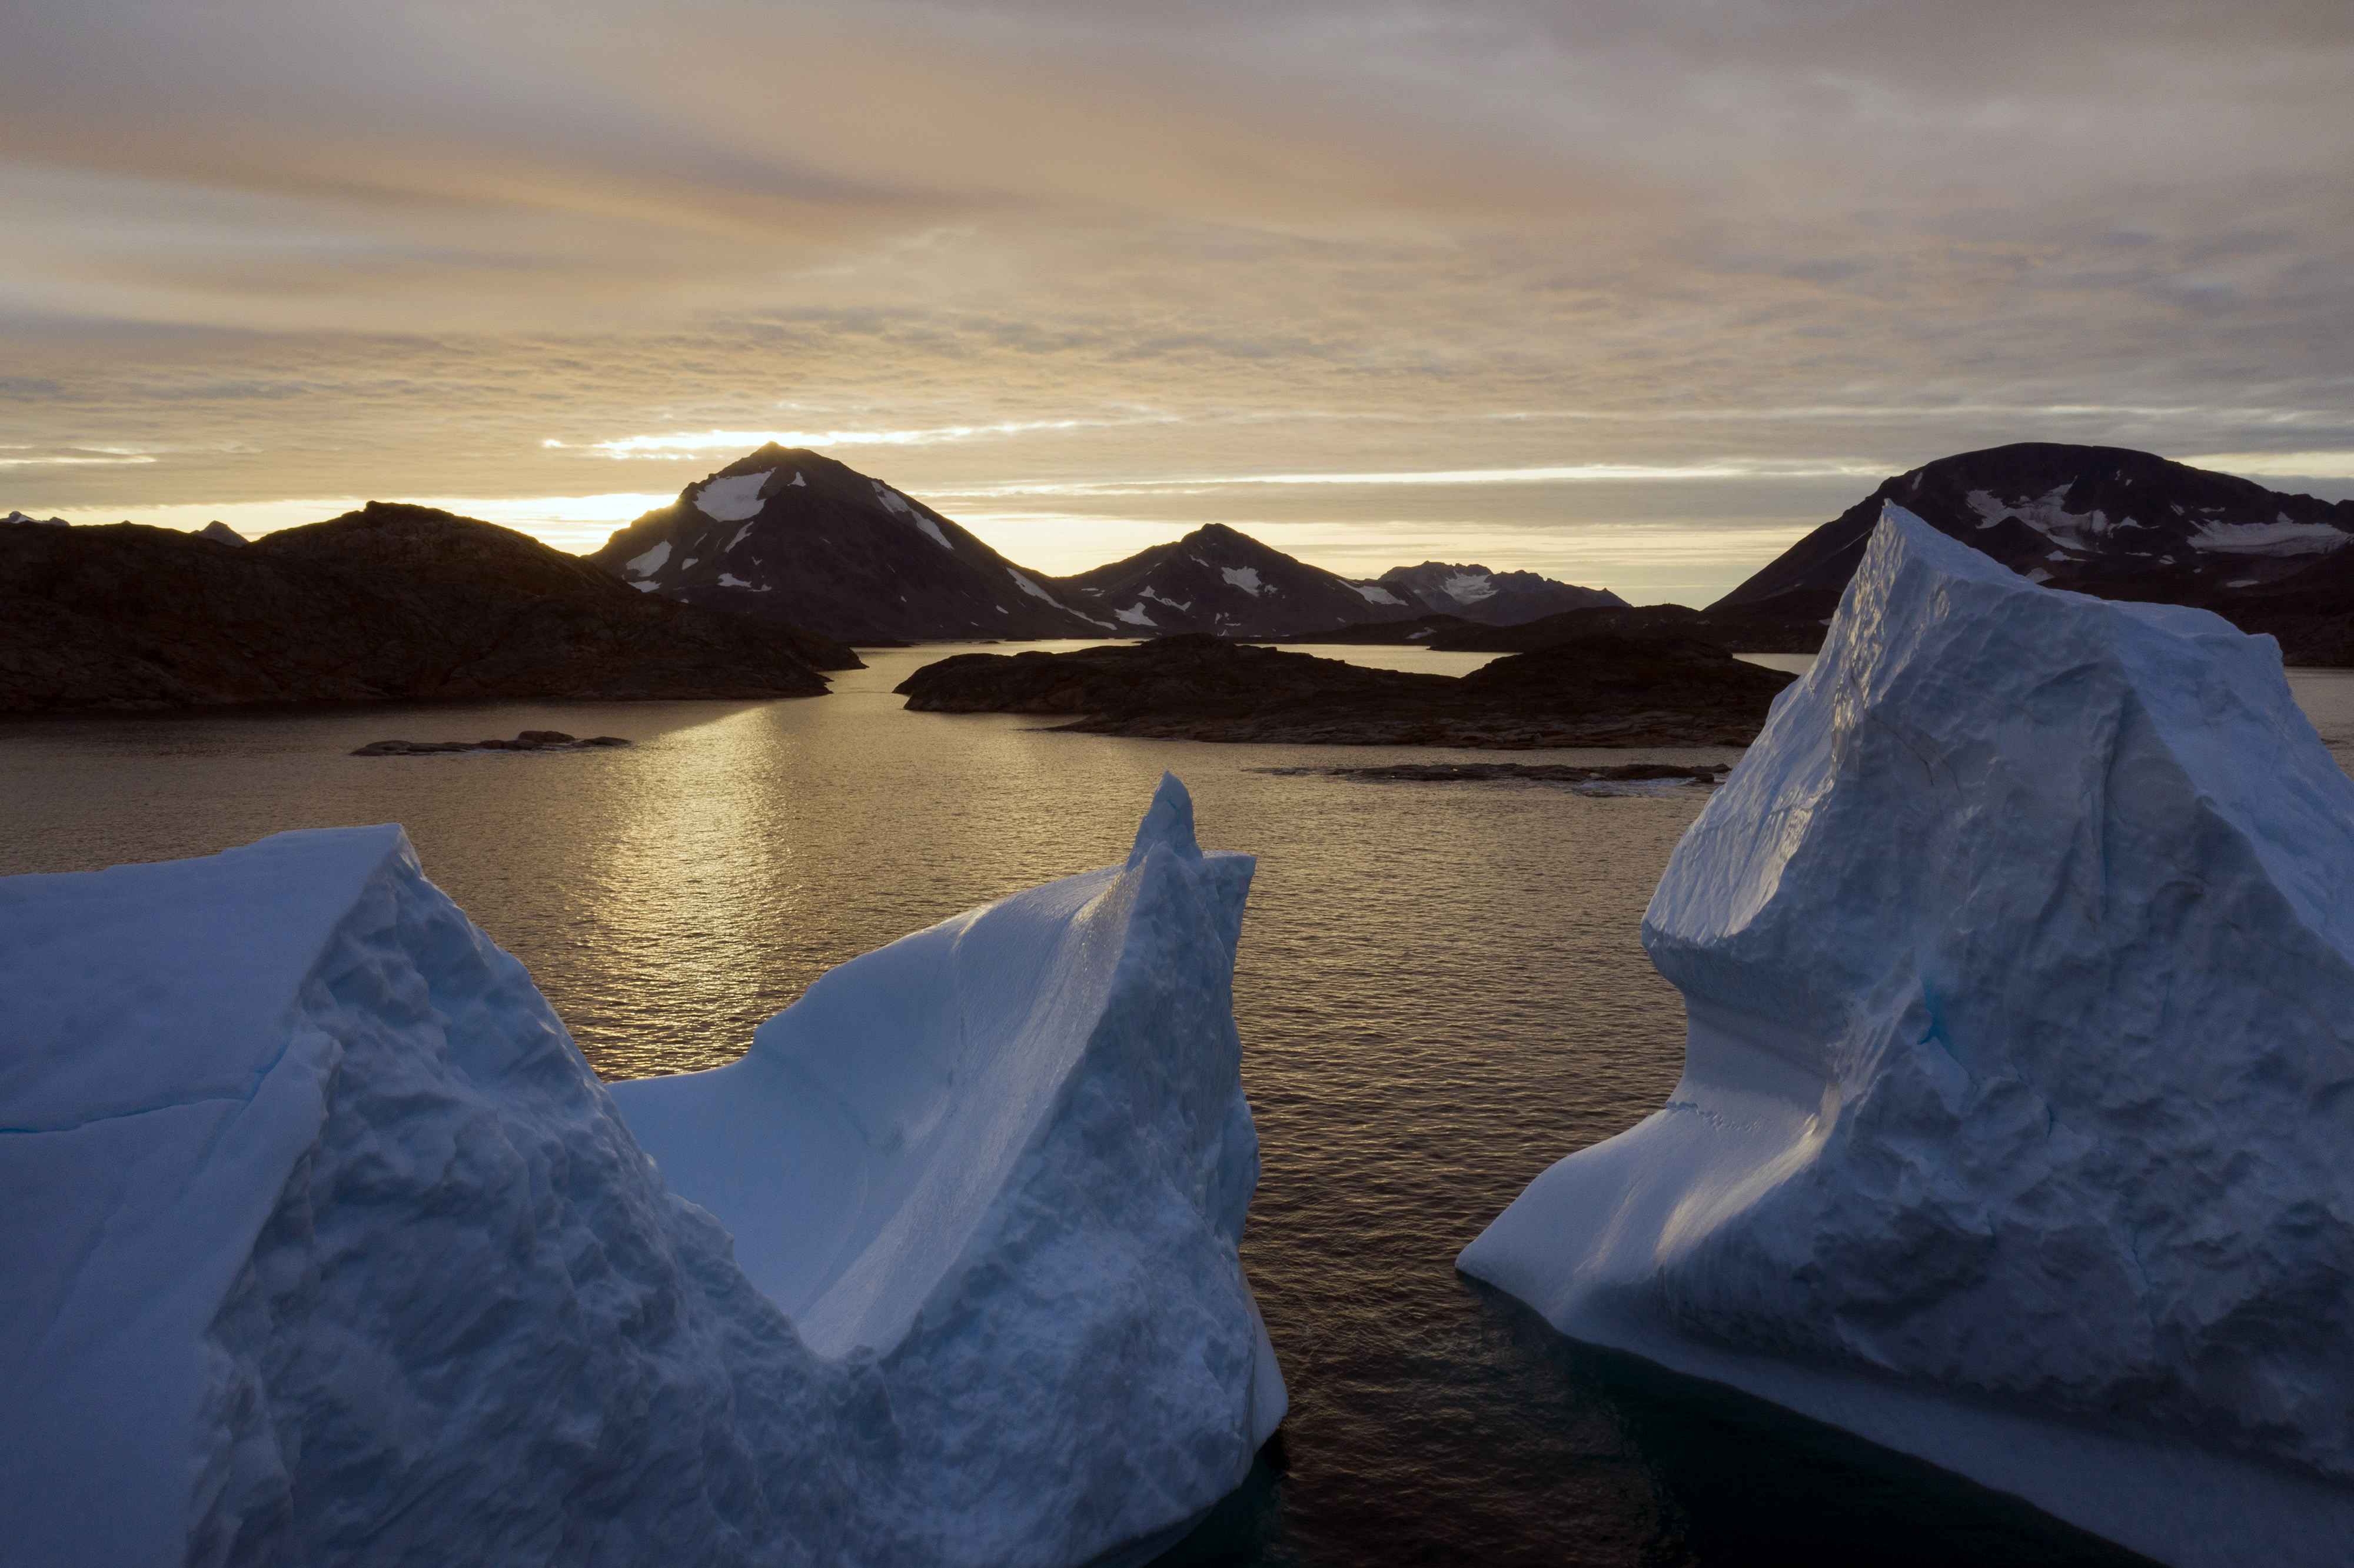 New climate report: Oceans rising faster, ice melting more